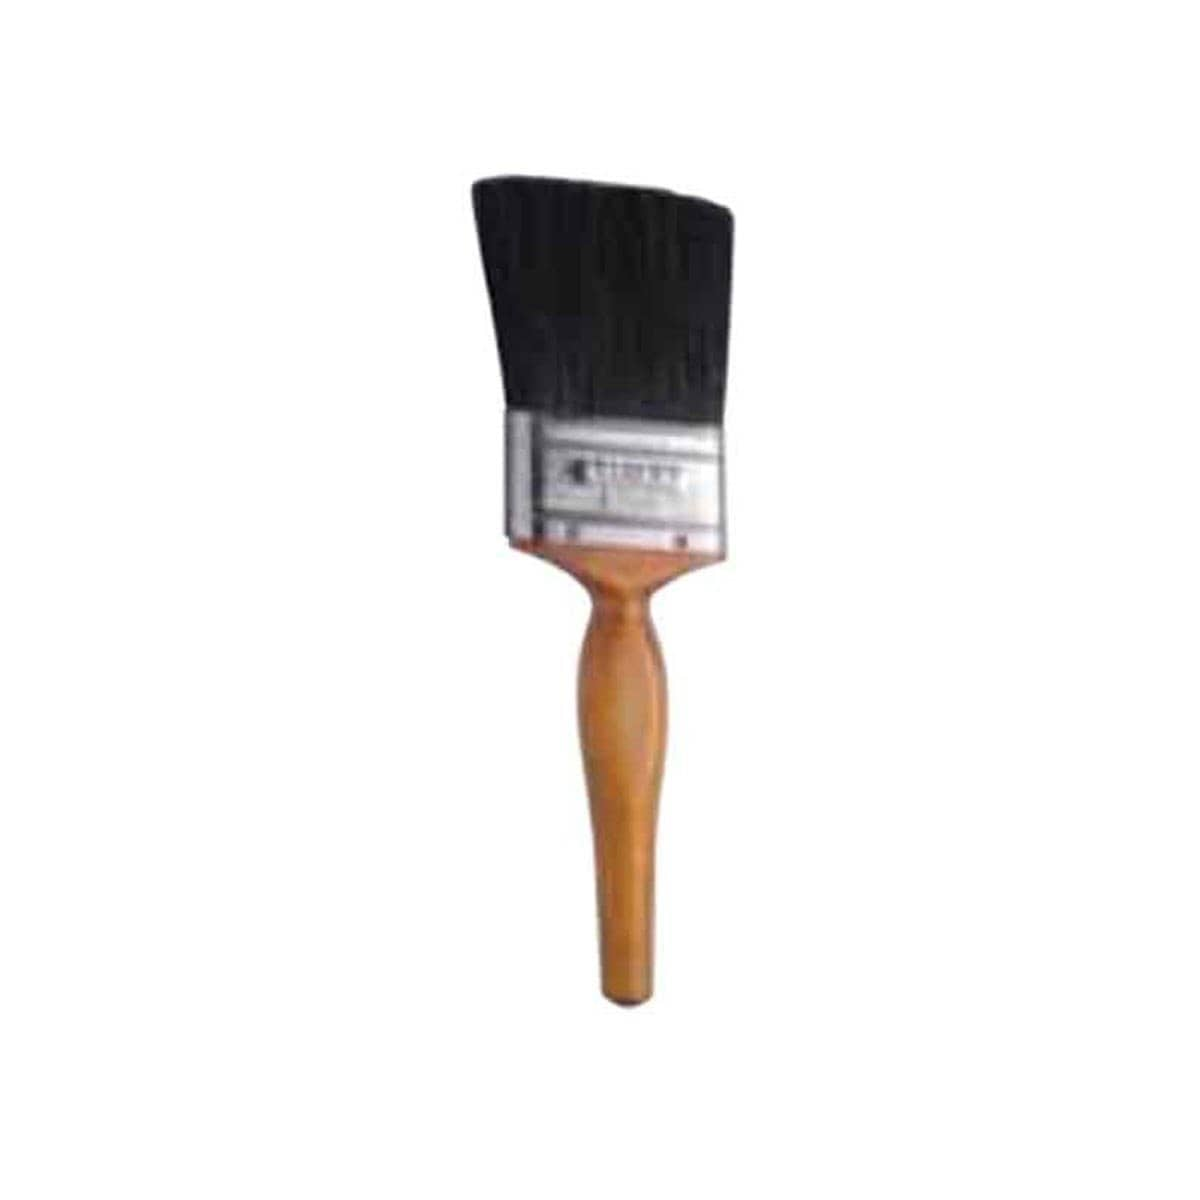 STANLEY AllMaster Paint Brush 1-1/2in 38mm (29-032-1)